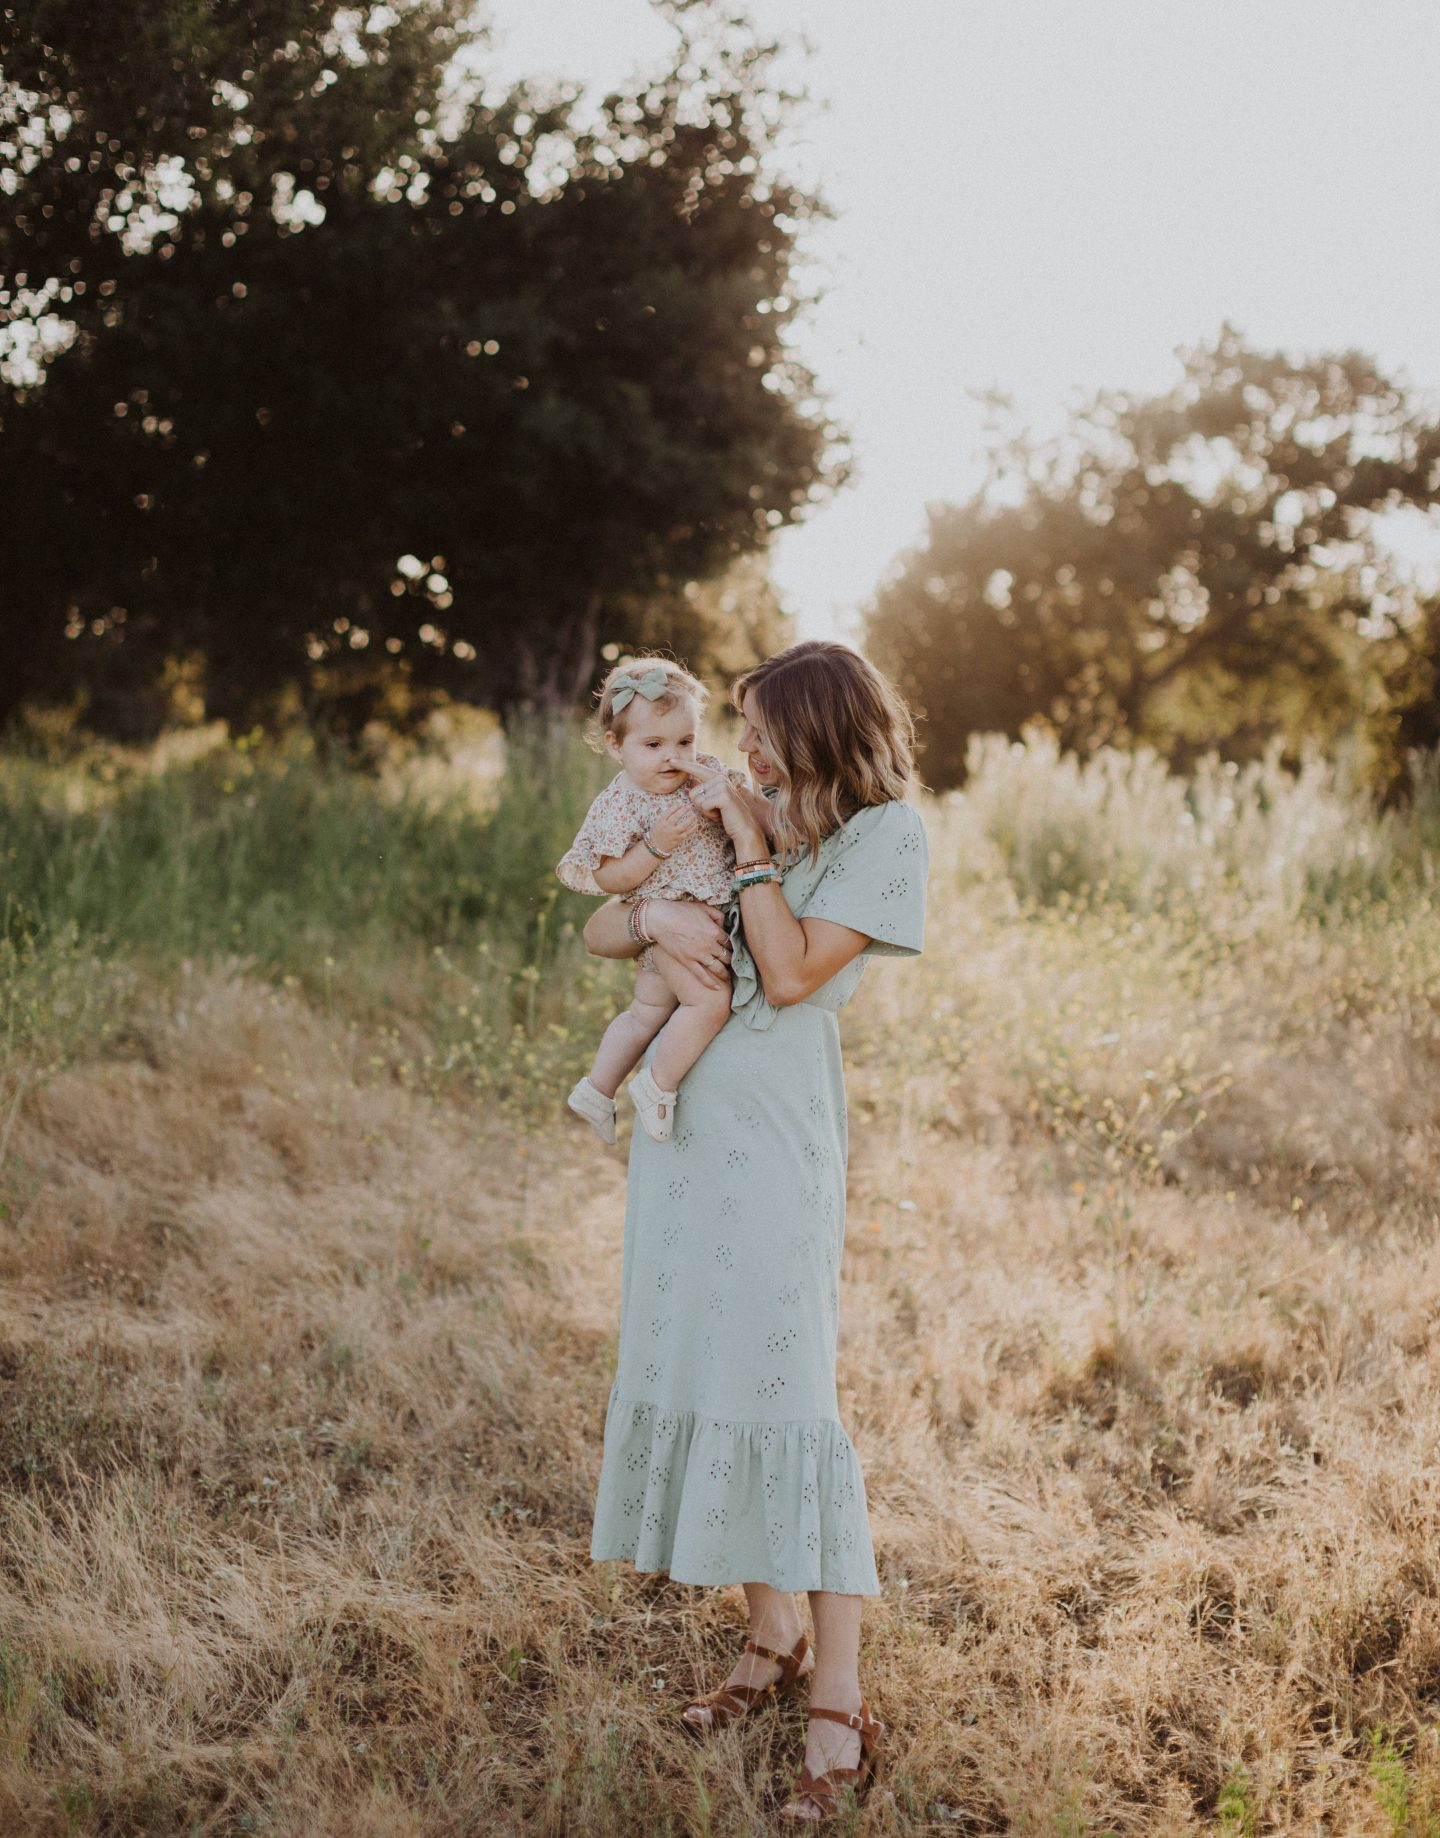 Life Update by popular lifestyle blog, Navy Grace: image of a baby girl wearing white mary jane shoes, a mint green bow head band, and a floral print dress and being held by her mom who is wearing a sage green eyelet dress.